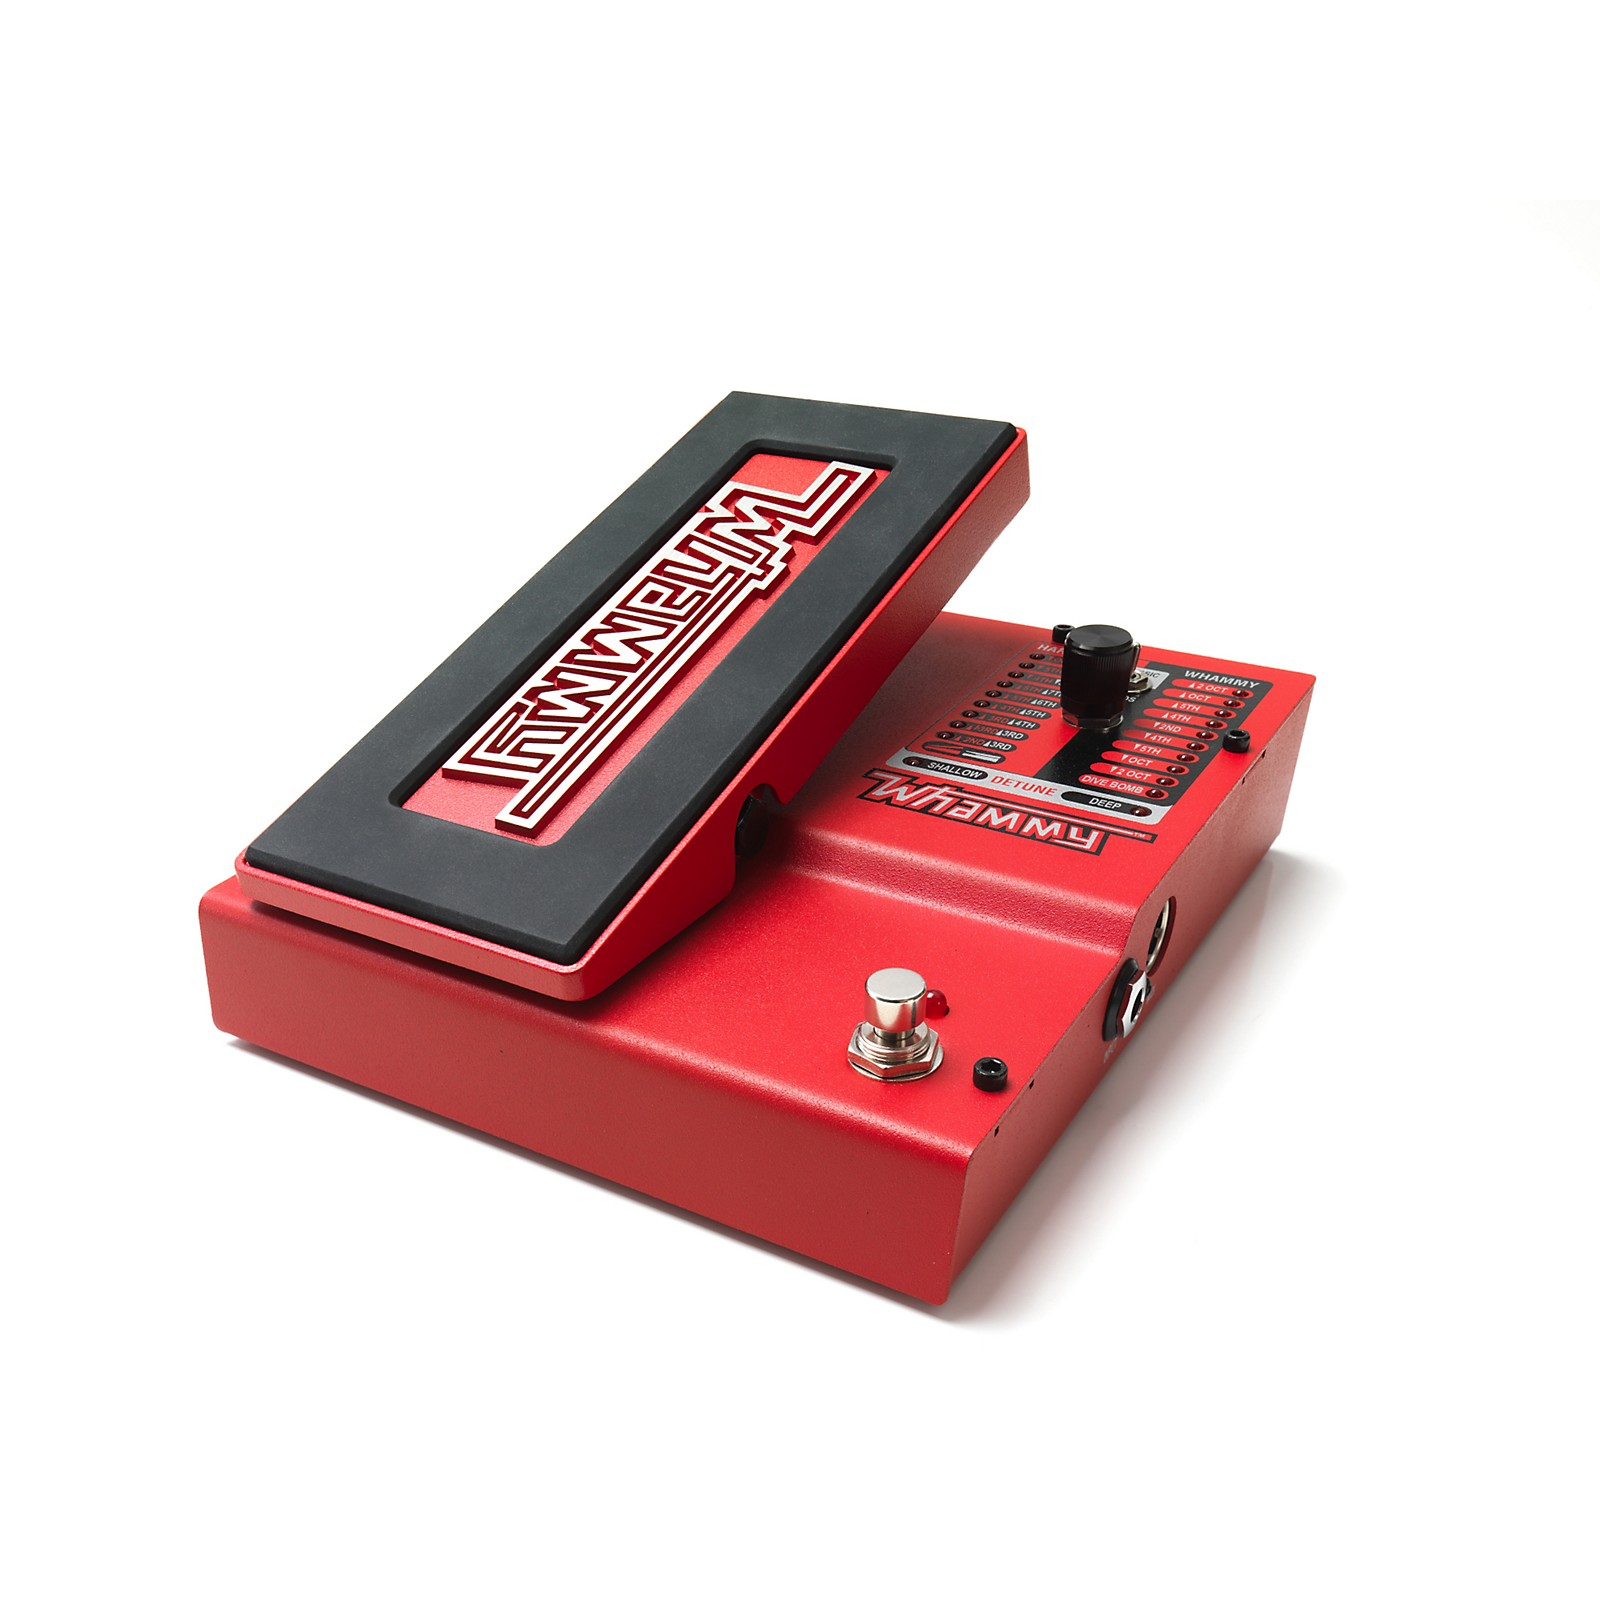 DigiTech Whammy Pitch-Shifting Guitar Effects Pedal